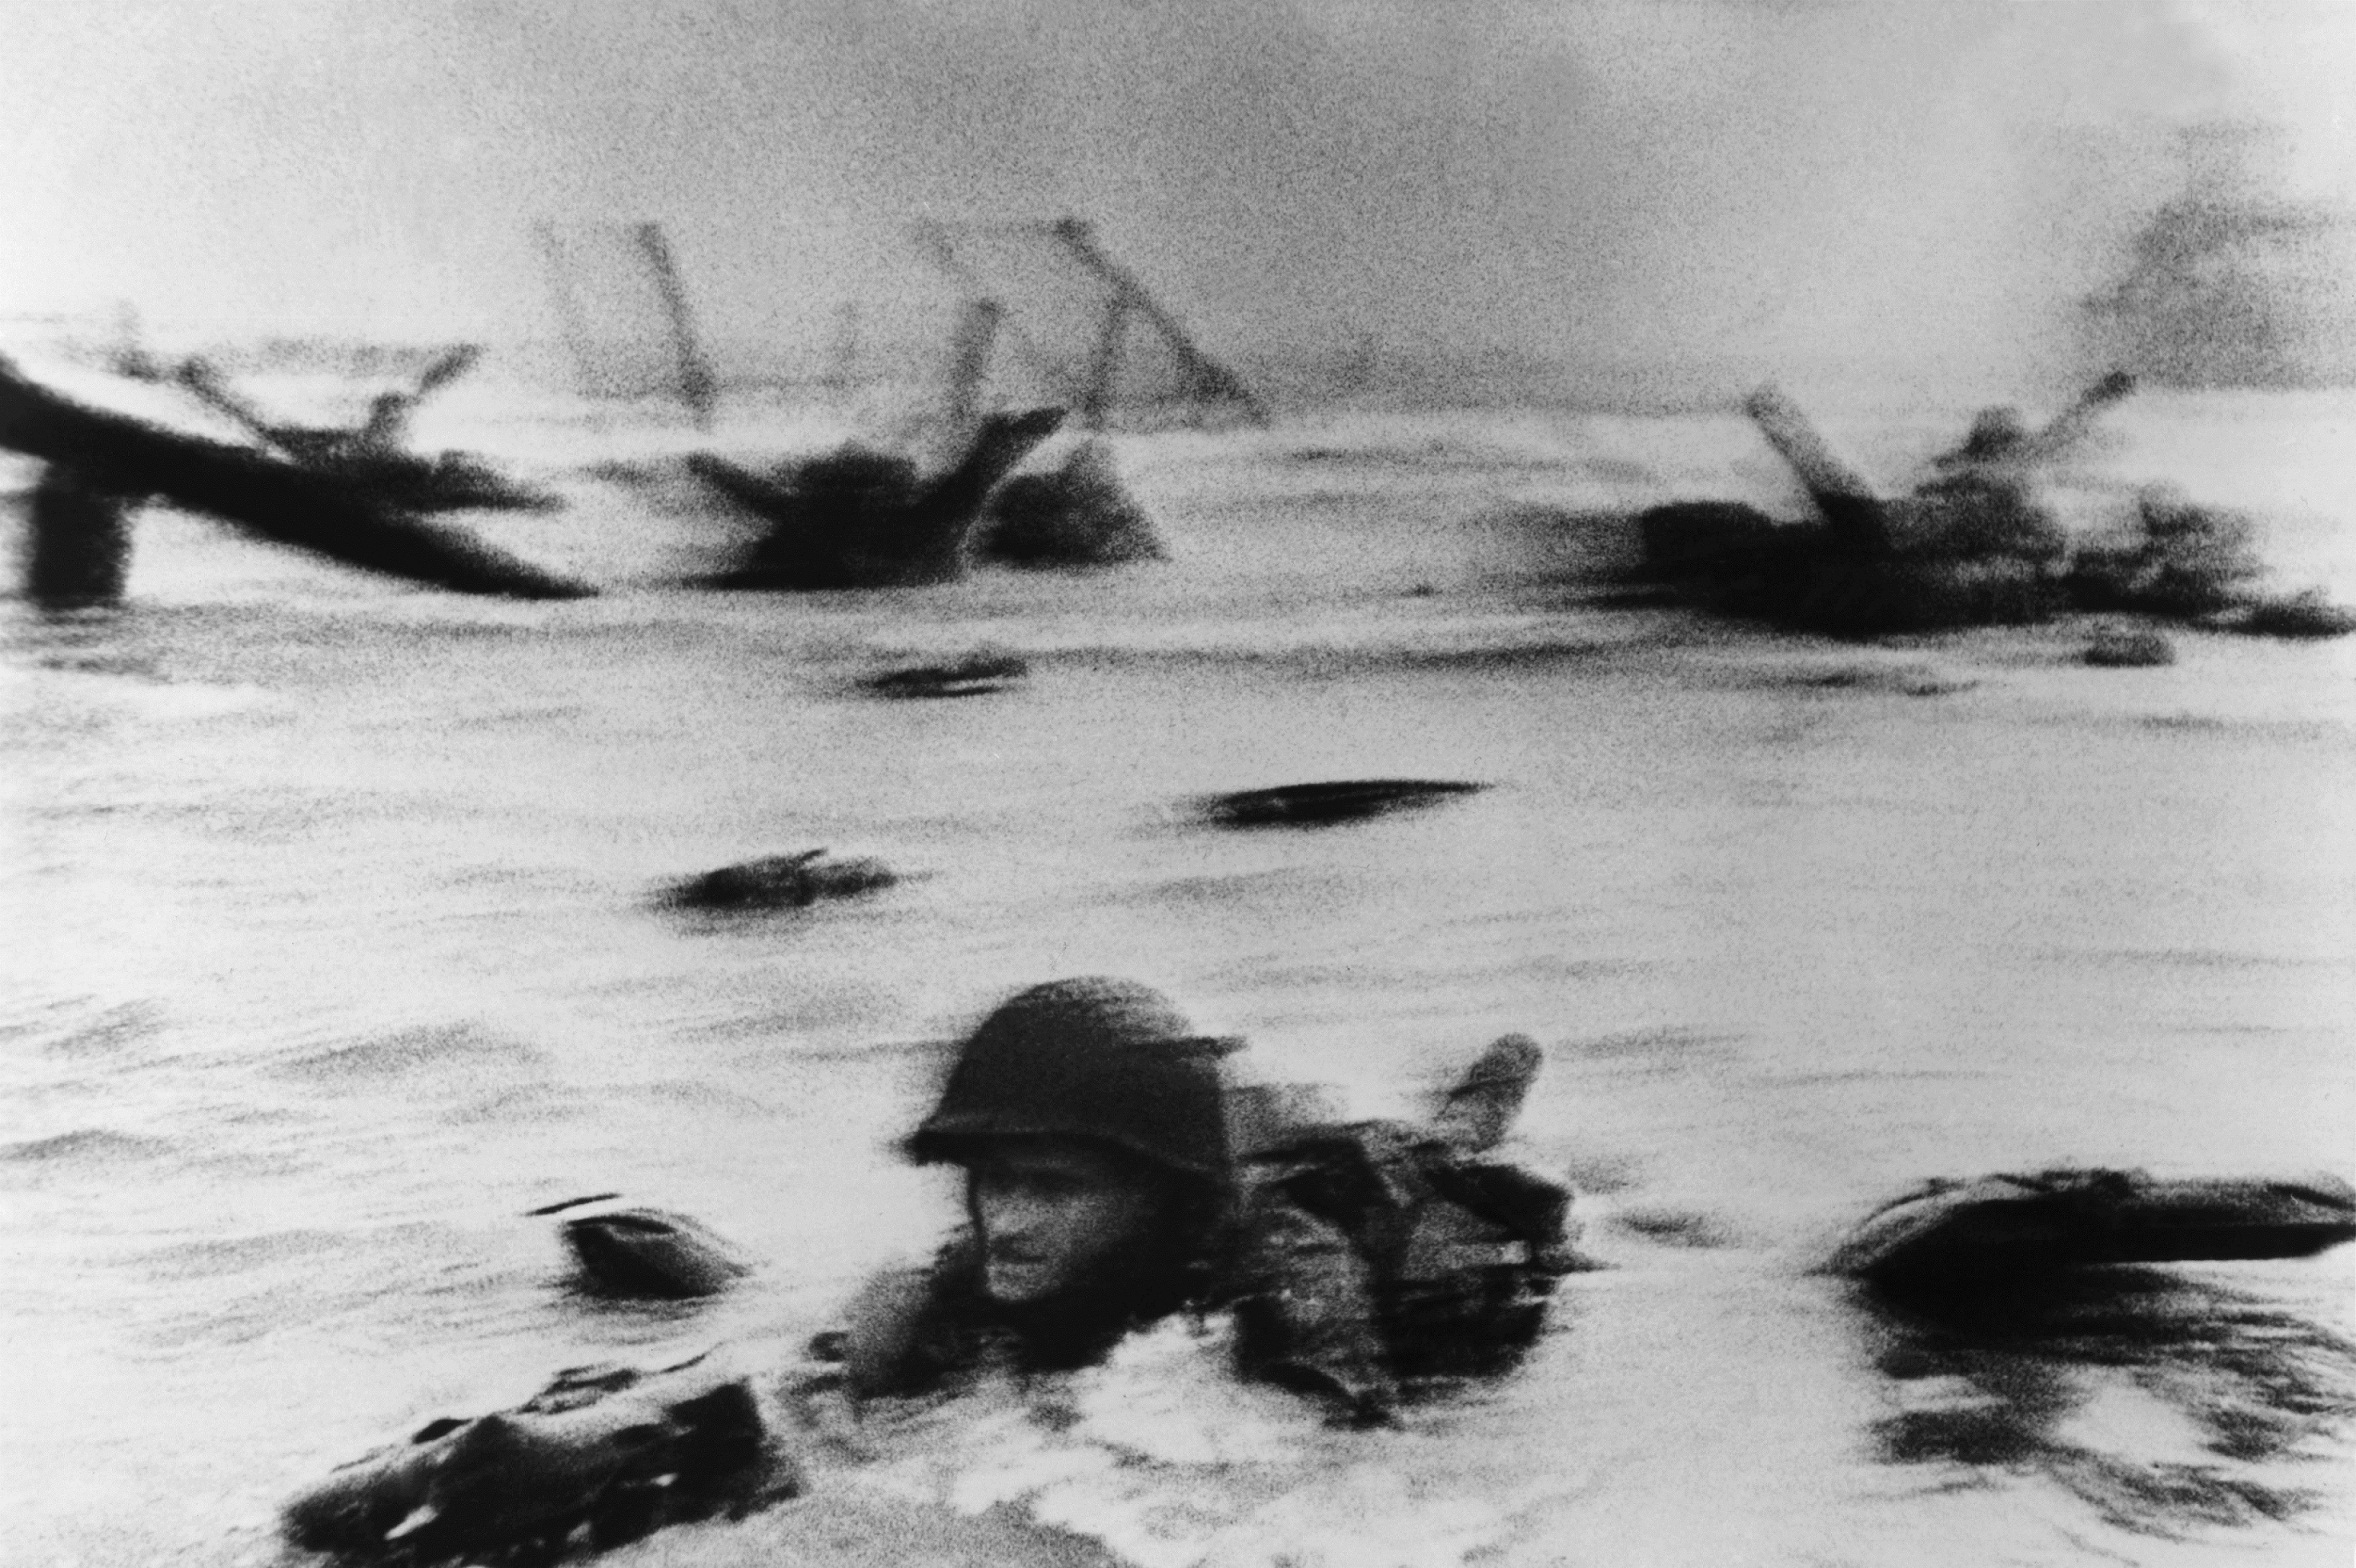 Robert Capa - Landing of the American troops on Omaha Beach, France, 1944 © Robert Capa Courtesy of ATLAS Gallery